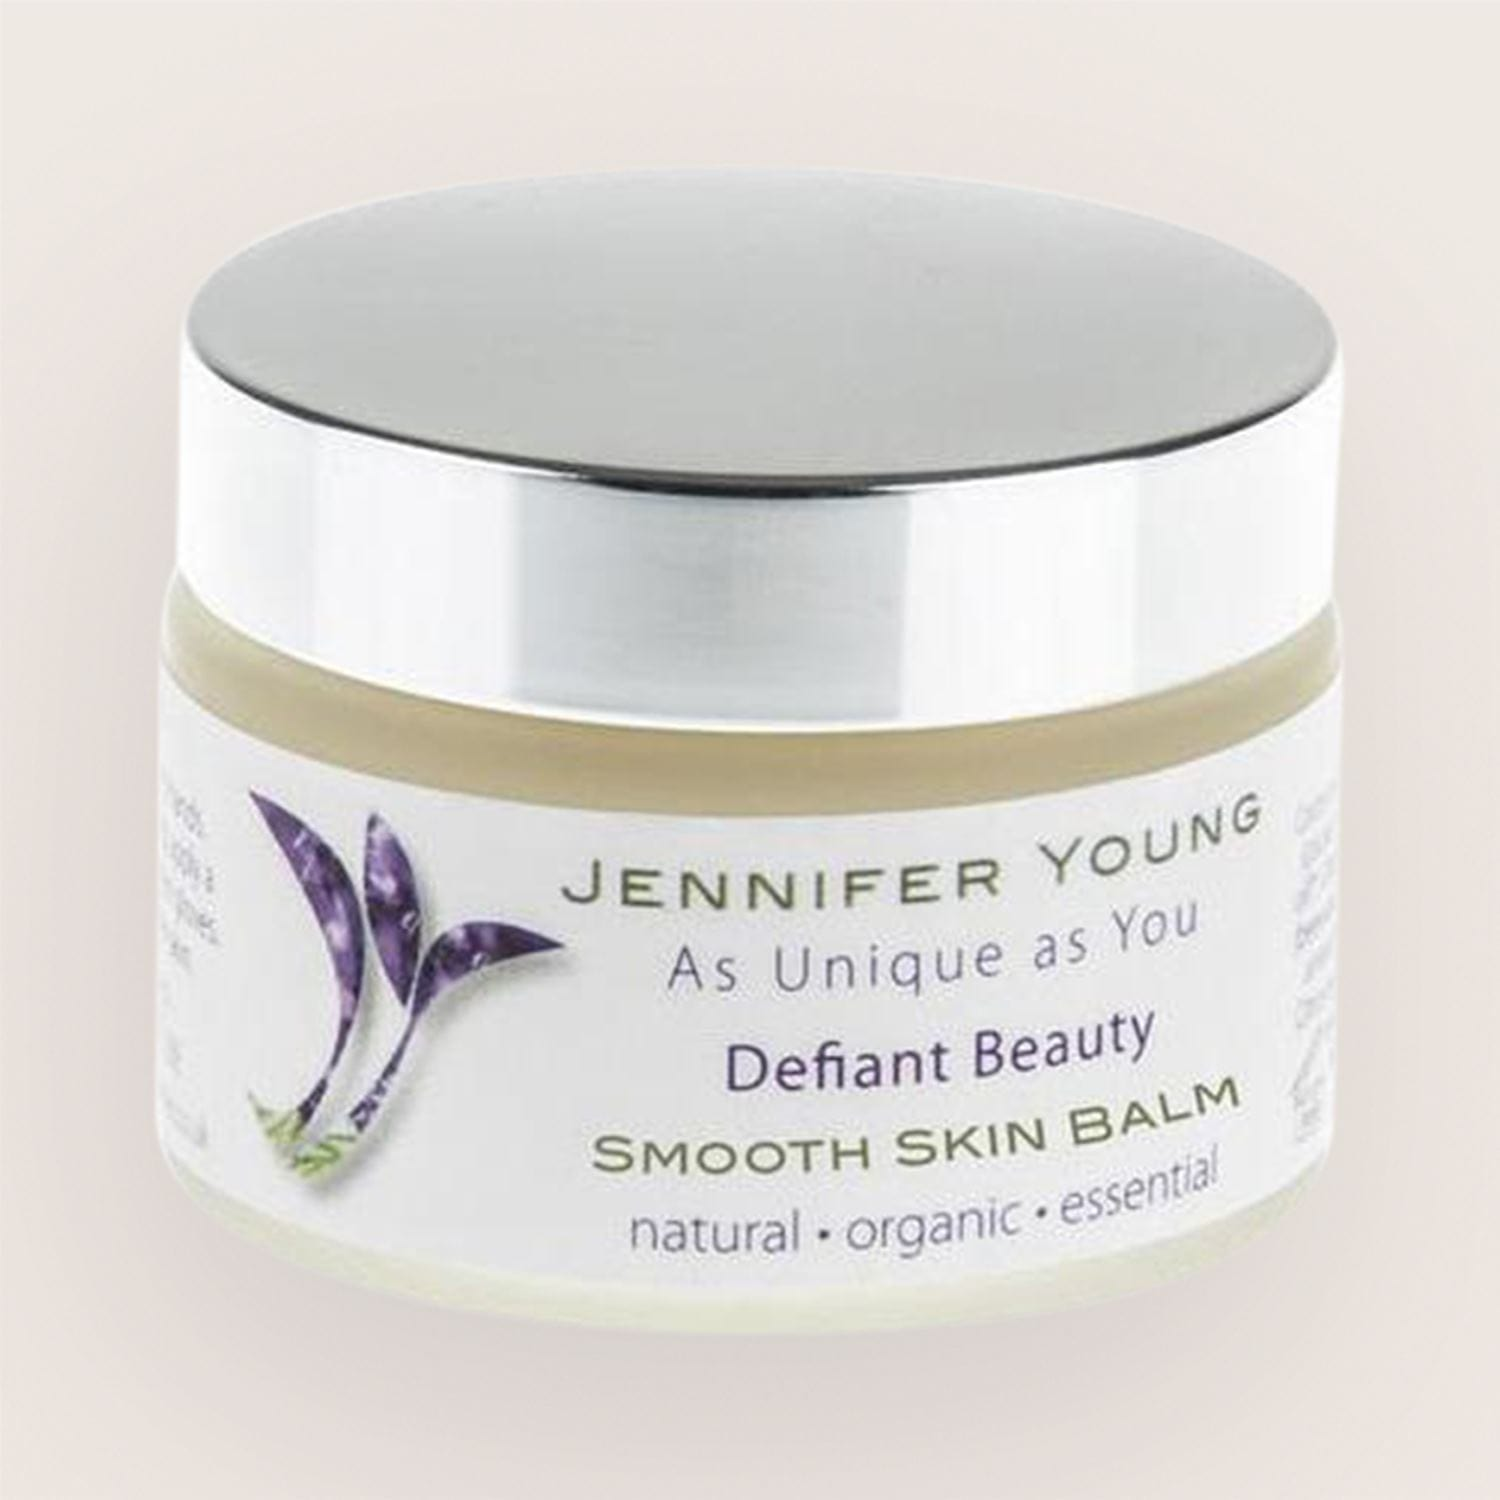 Defiant Beauty Smooth Skin Balm 50g